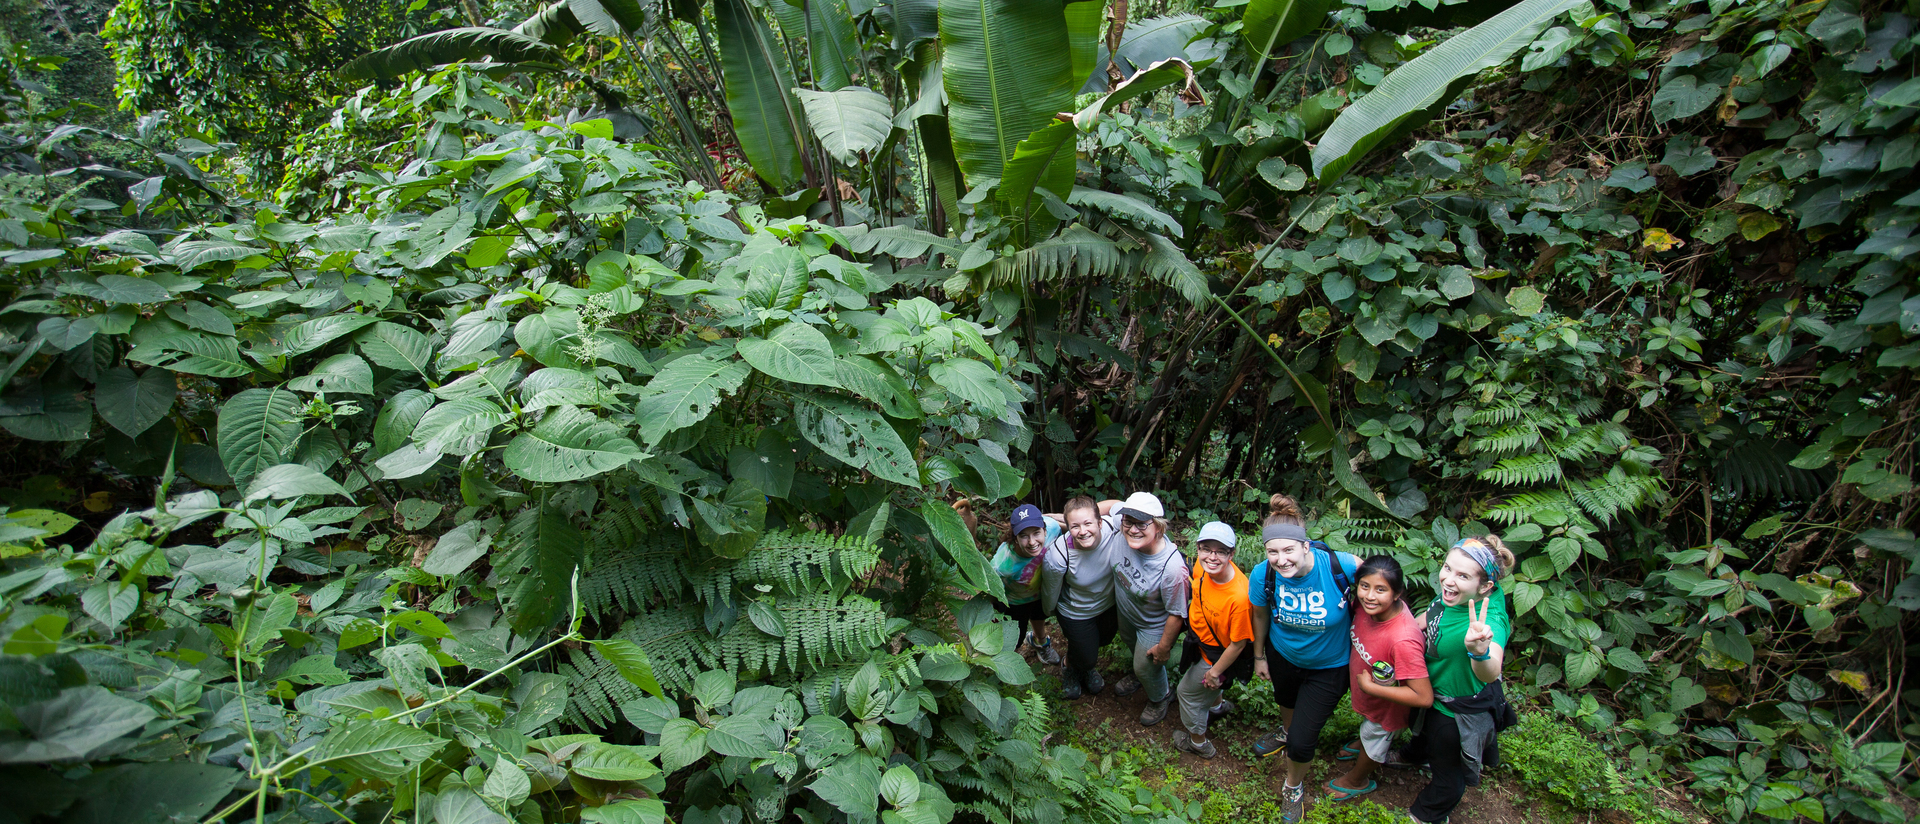 Students in the jungle in Guatemala on cultural immersion experience.